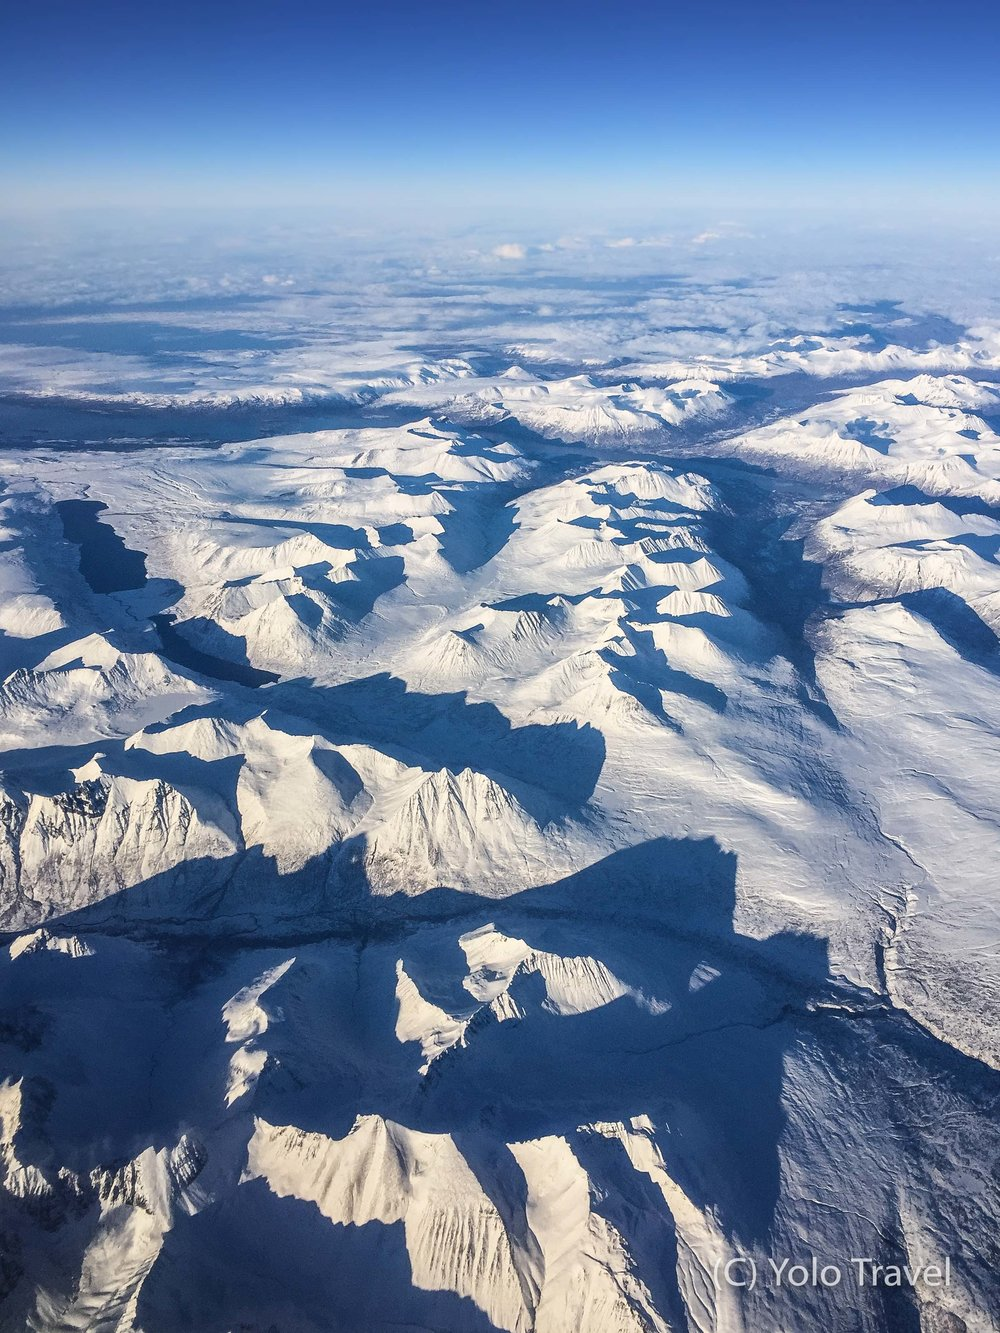 View from the Flight Home (Alasak ... Yes not actually Canada!)